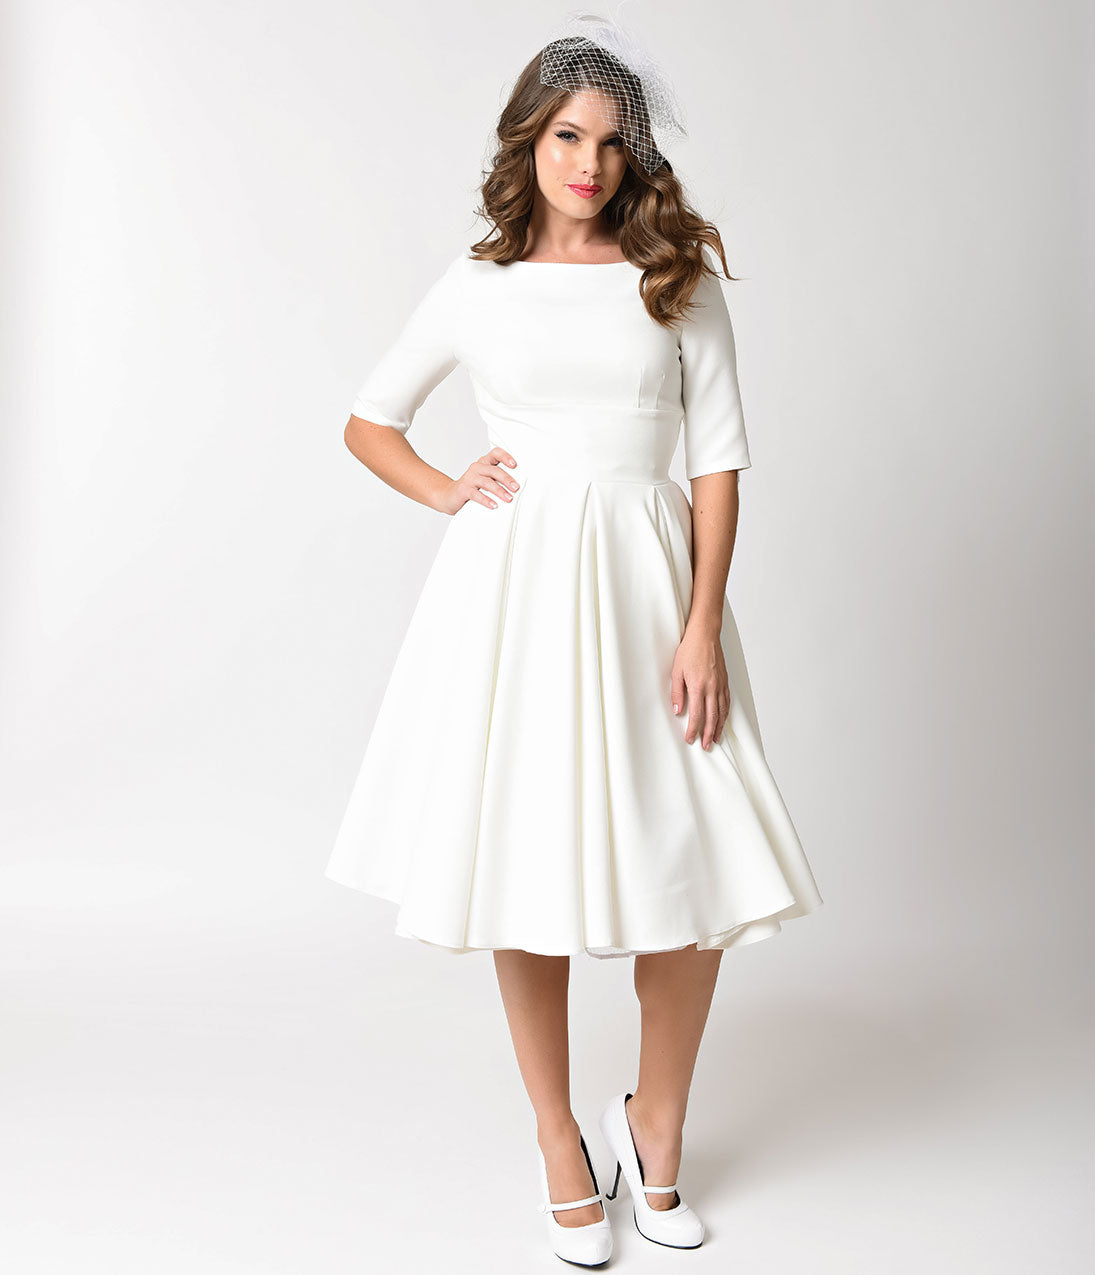 60s Wedding Dress | 1960s Style Wedding Dresses The Pretty Dress Company Ivory Crepe Sleeved Hepburn Swing Dress $172.00 AT vintagedancer.com